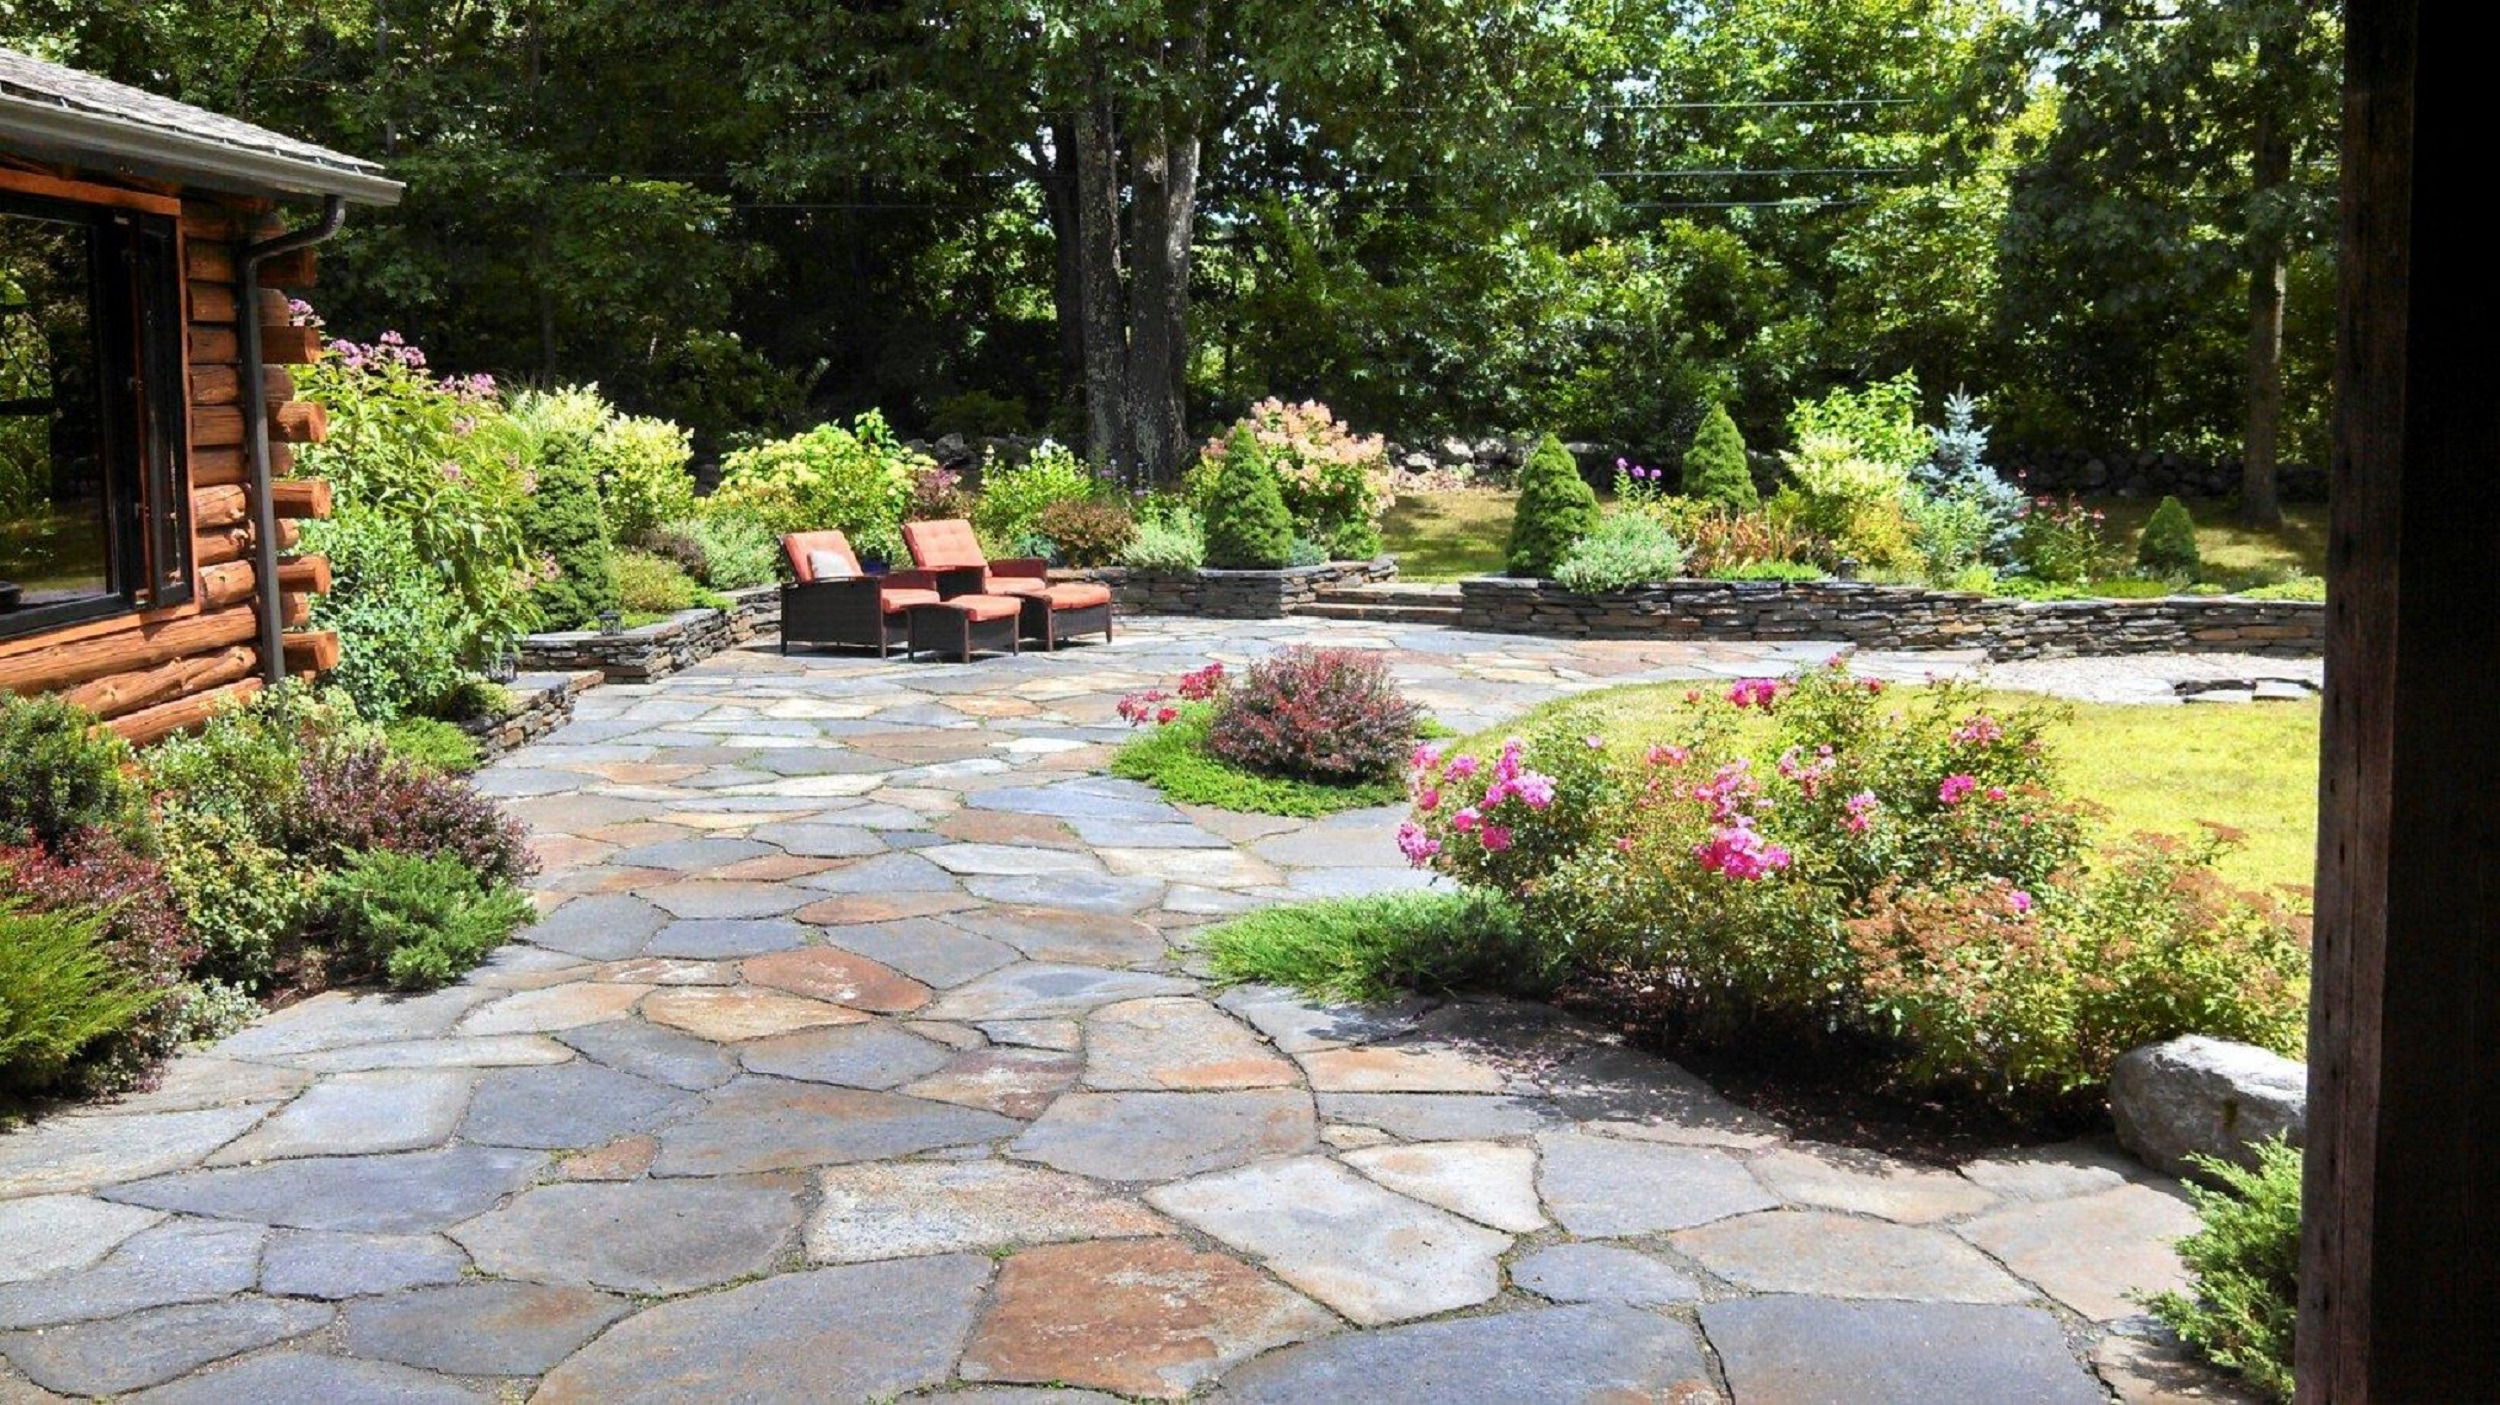 The natural look of stone in this goshen stone patio by steven breed garden designs